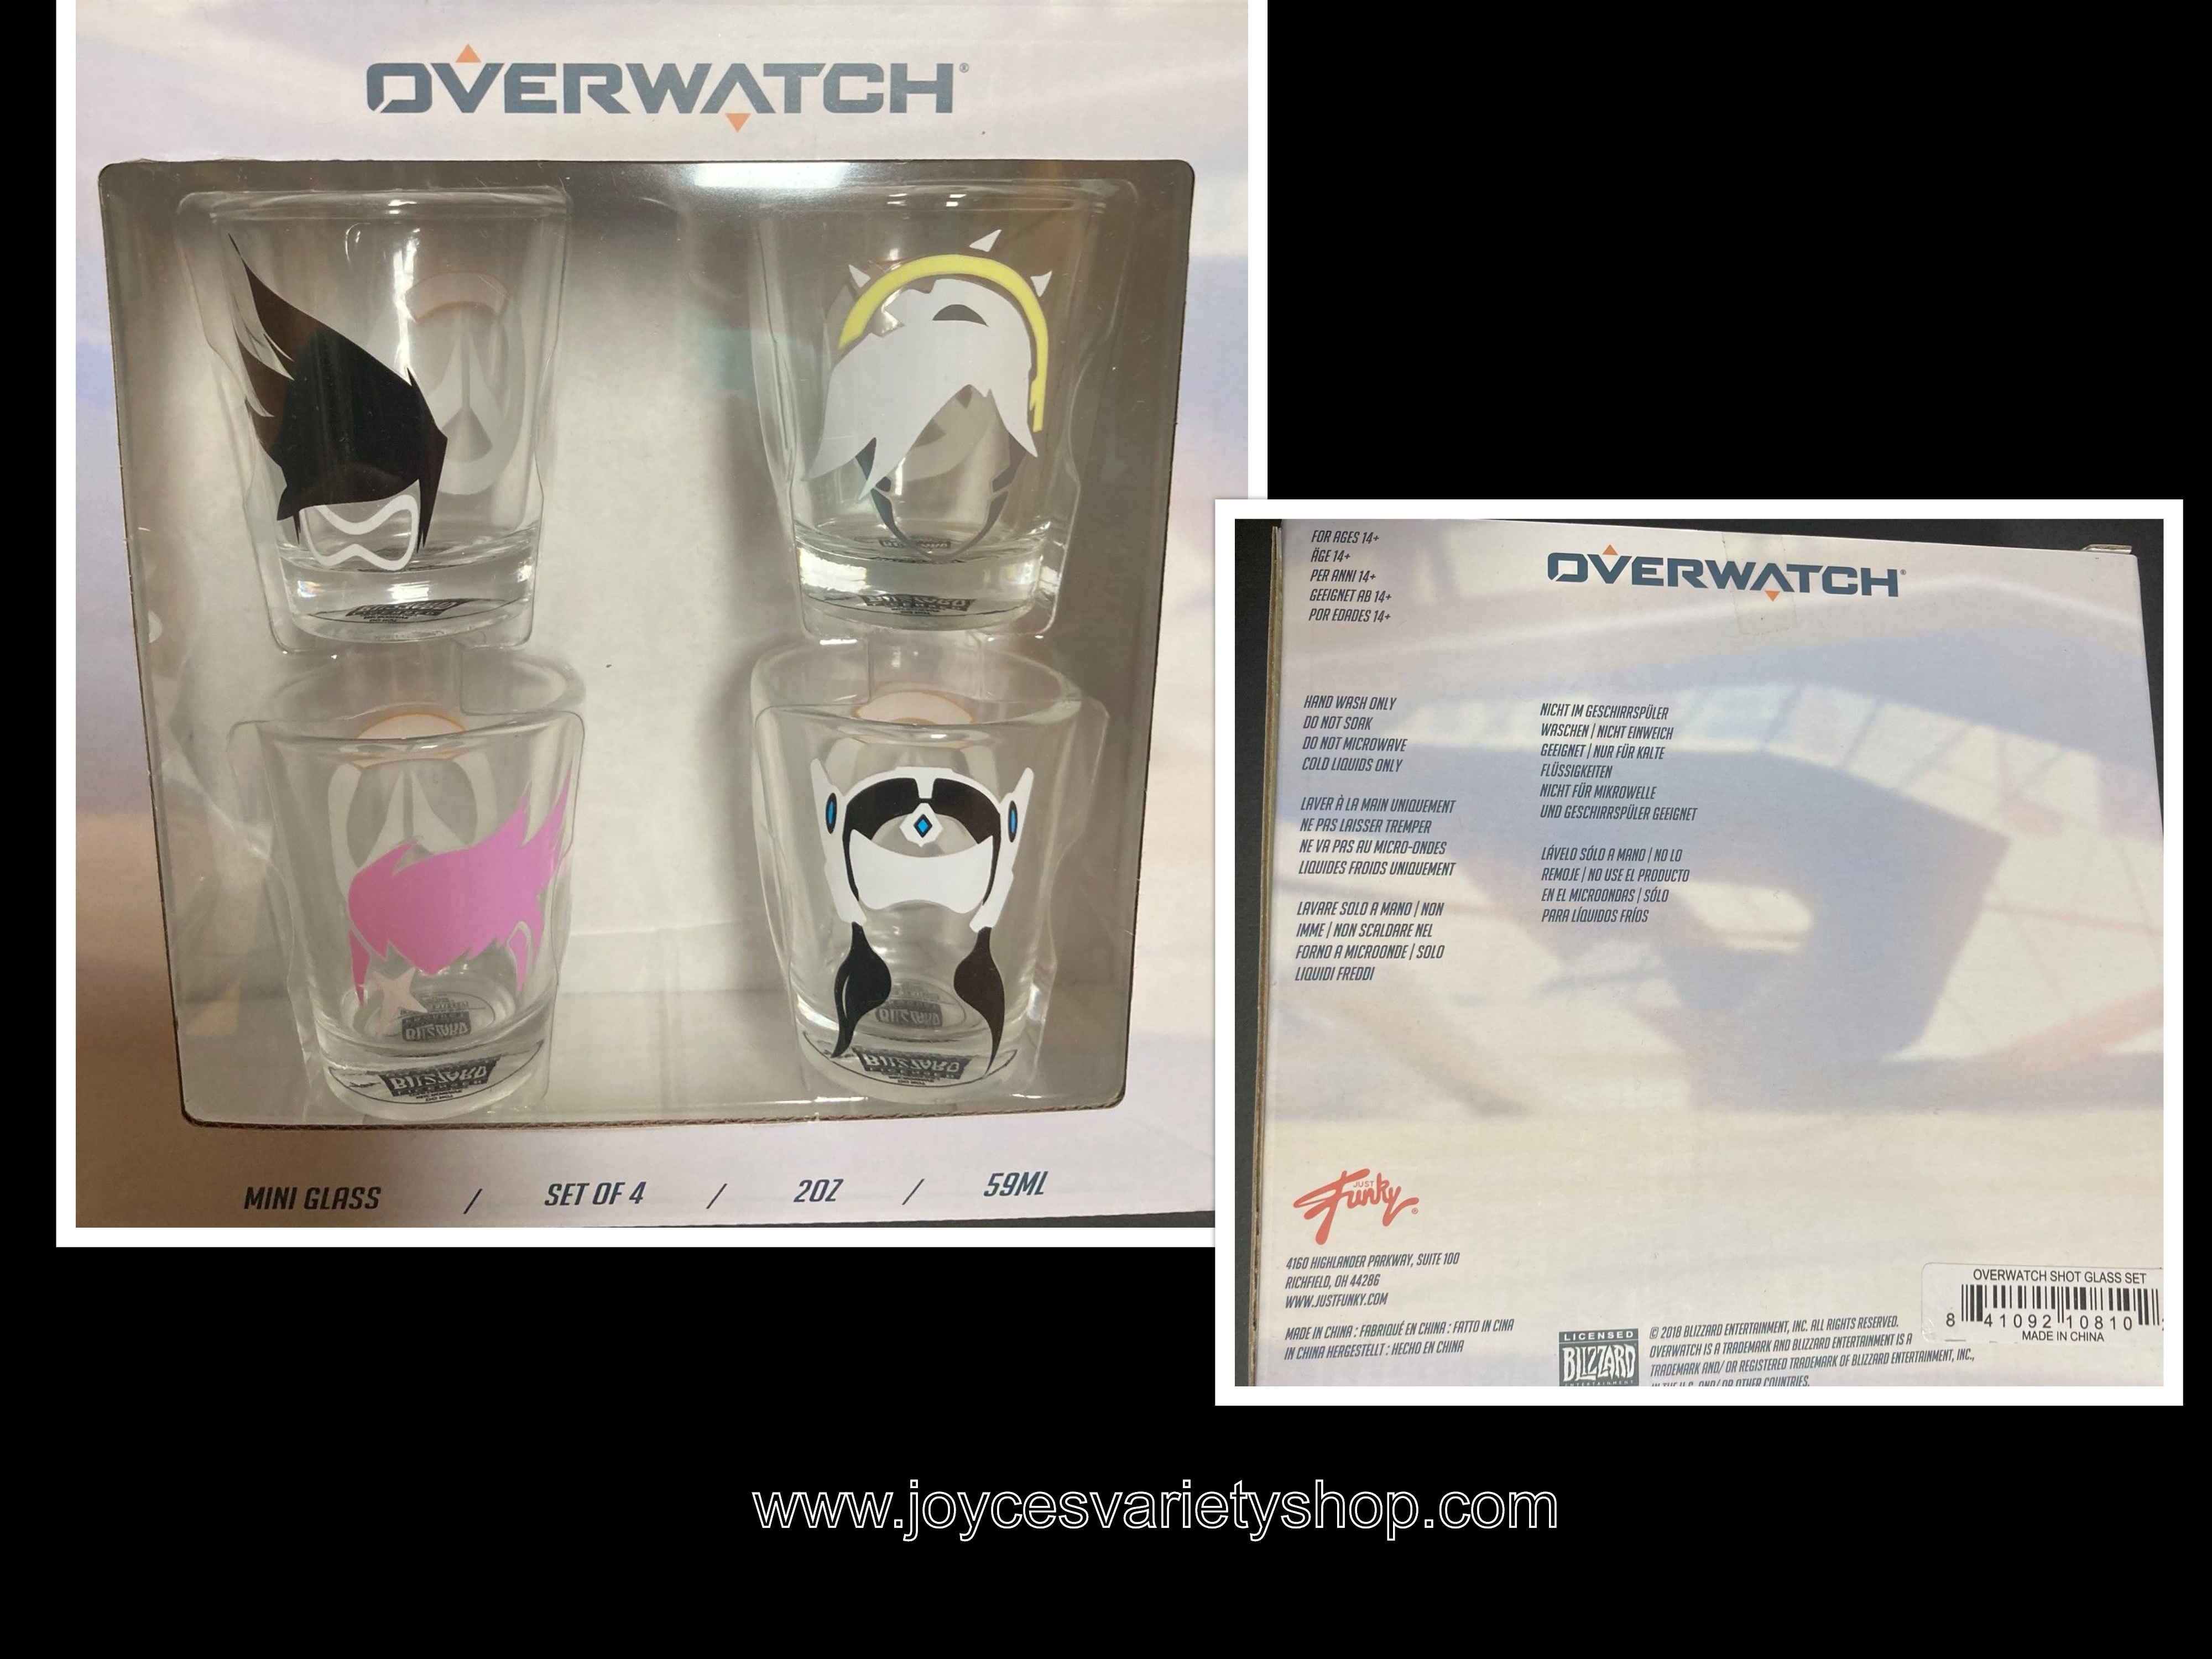 Overwatch Shot Glasses 2 oz Includes Tracer, D.Va, Mercy, Symmetra Characters